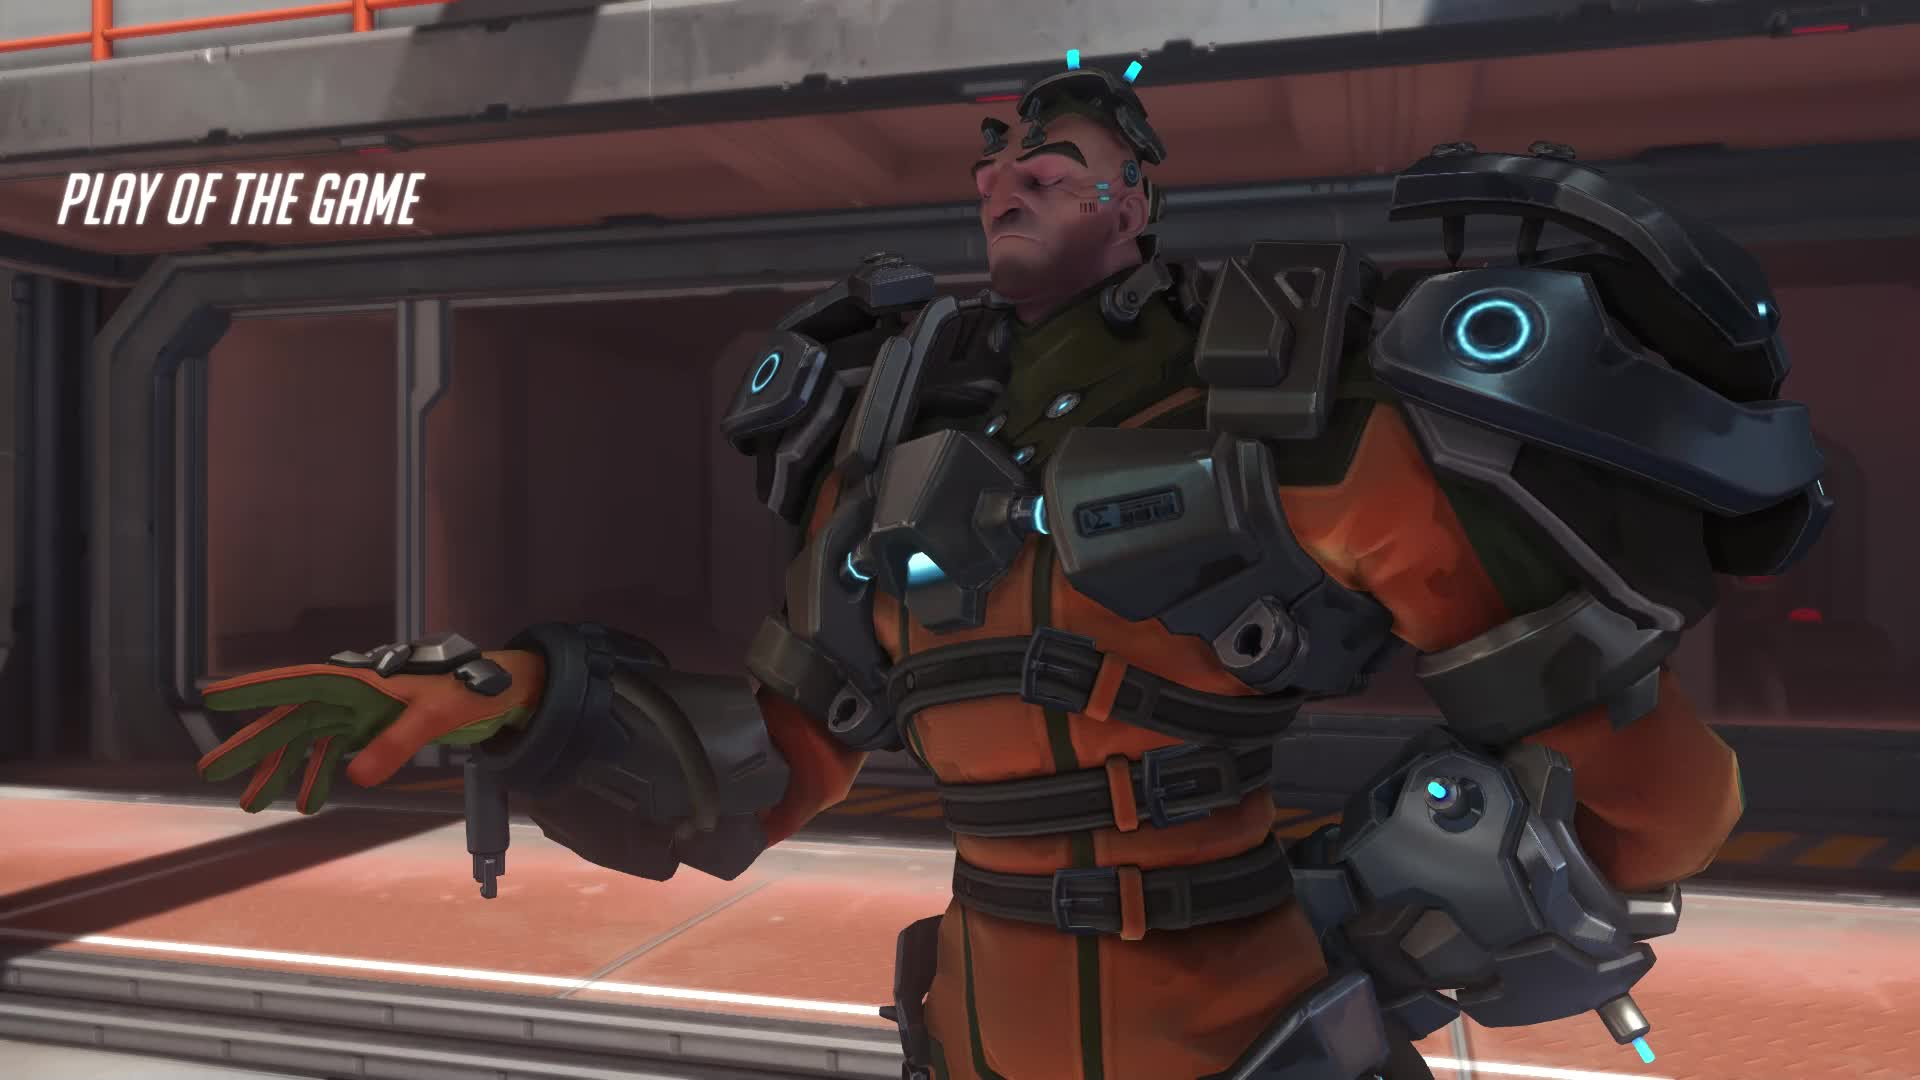 overwatch, potg, sing for me 19-08-14 22-36-41 GIFs